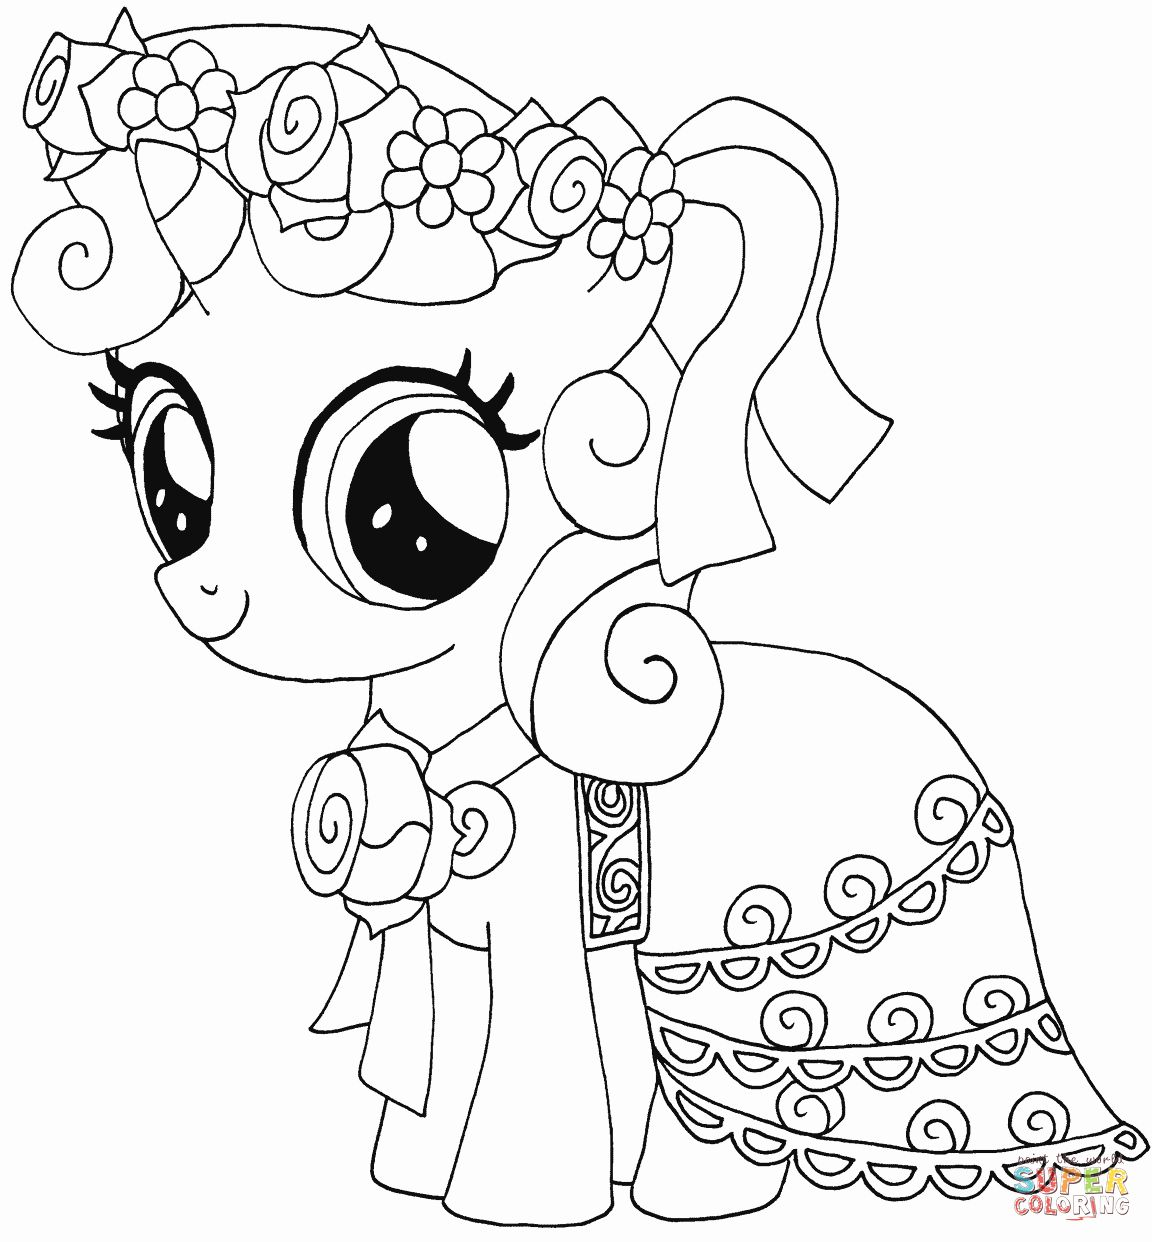 paw patrol sweetie coloring pages alphabet colouring twinkl elegant my little pony coloring pages patrol paw sweetie coloring